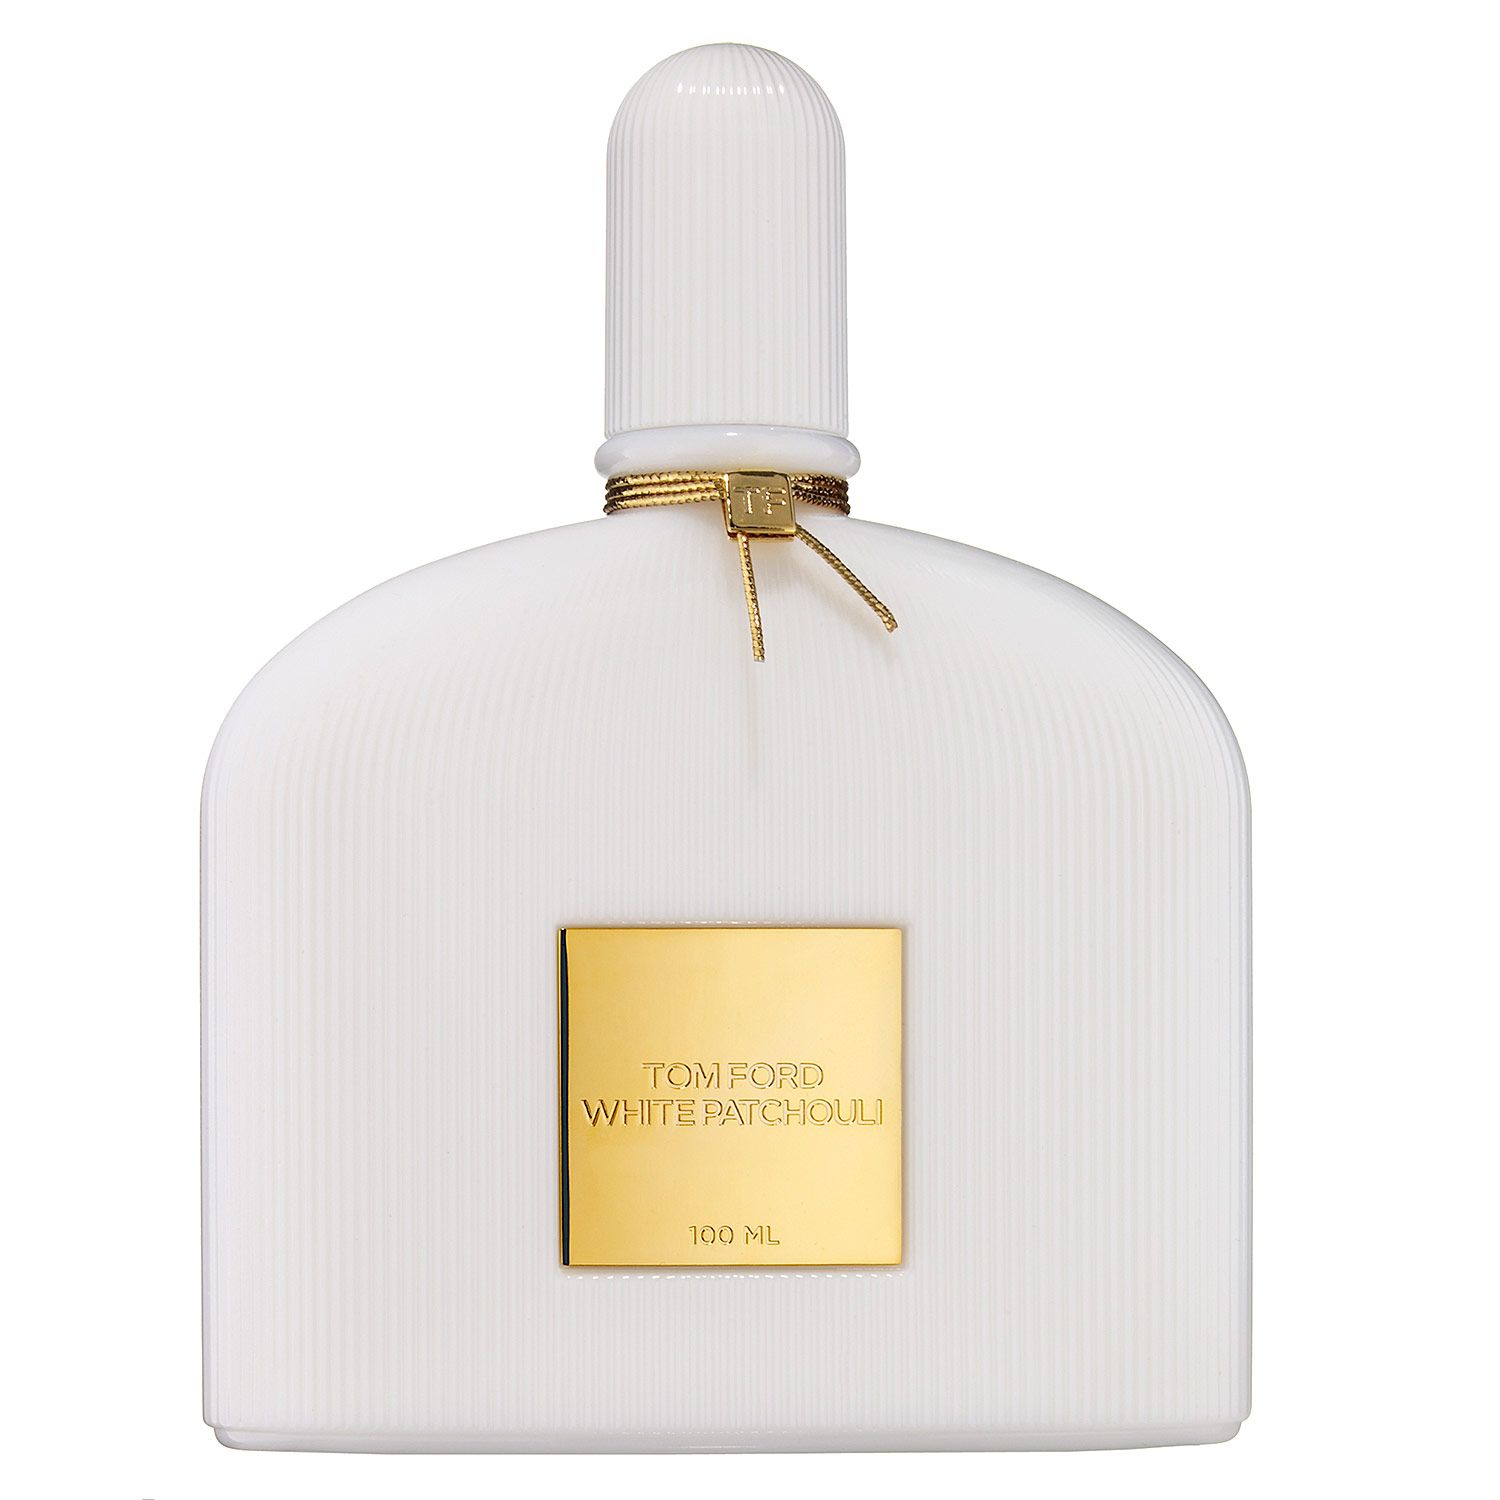 White Patchouli FordSephora Eccentrics In Tom 2019 The trQdsh